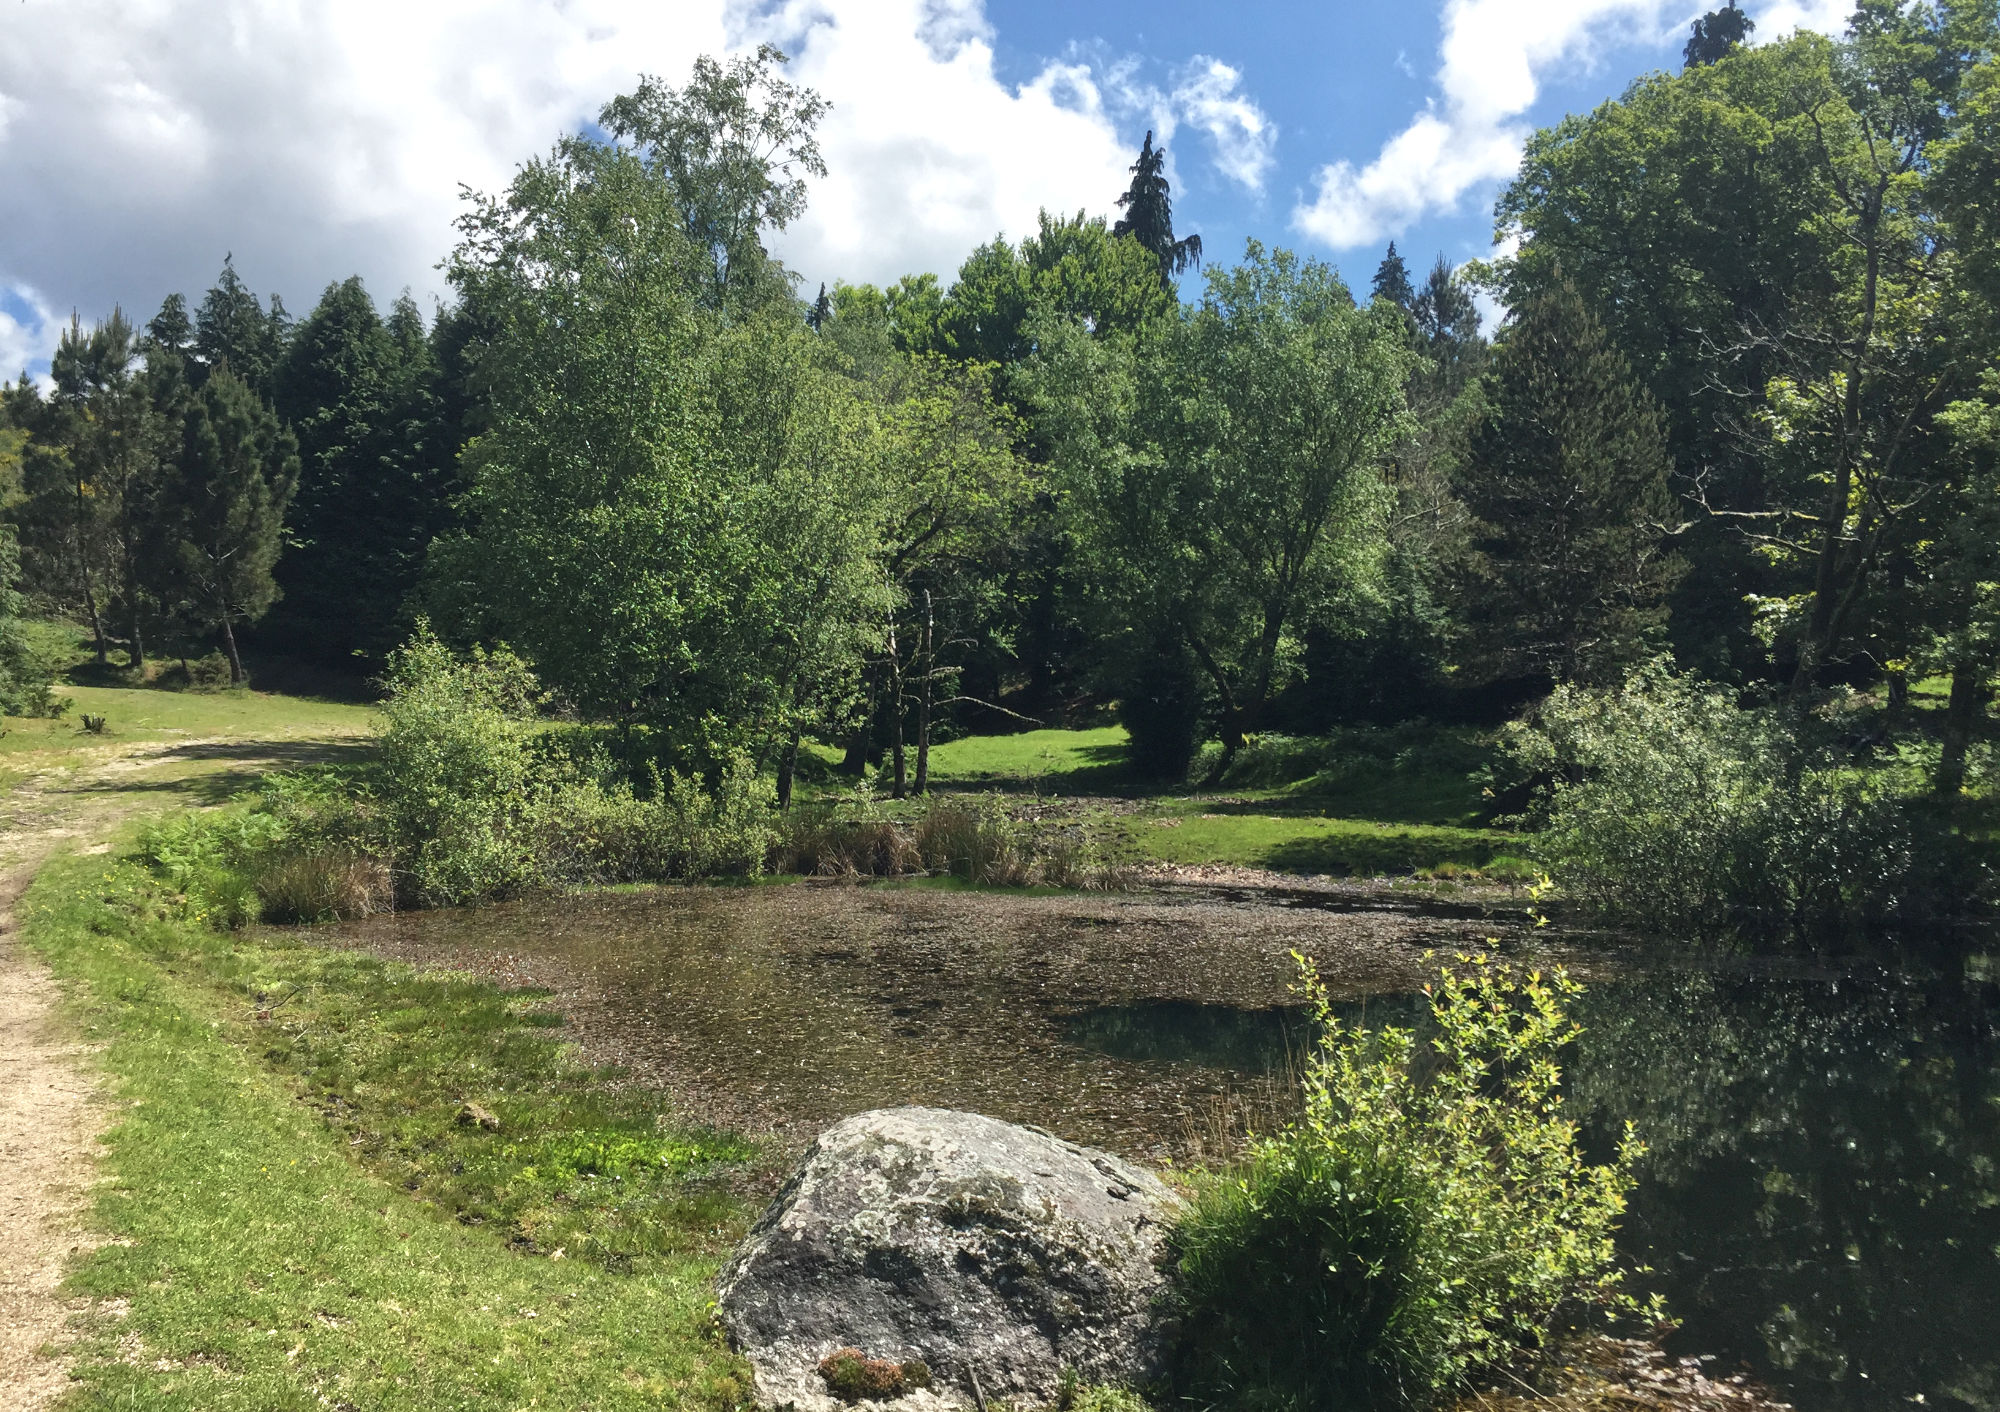 A pond in 'park land' at the top of the mountain